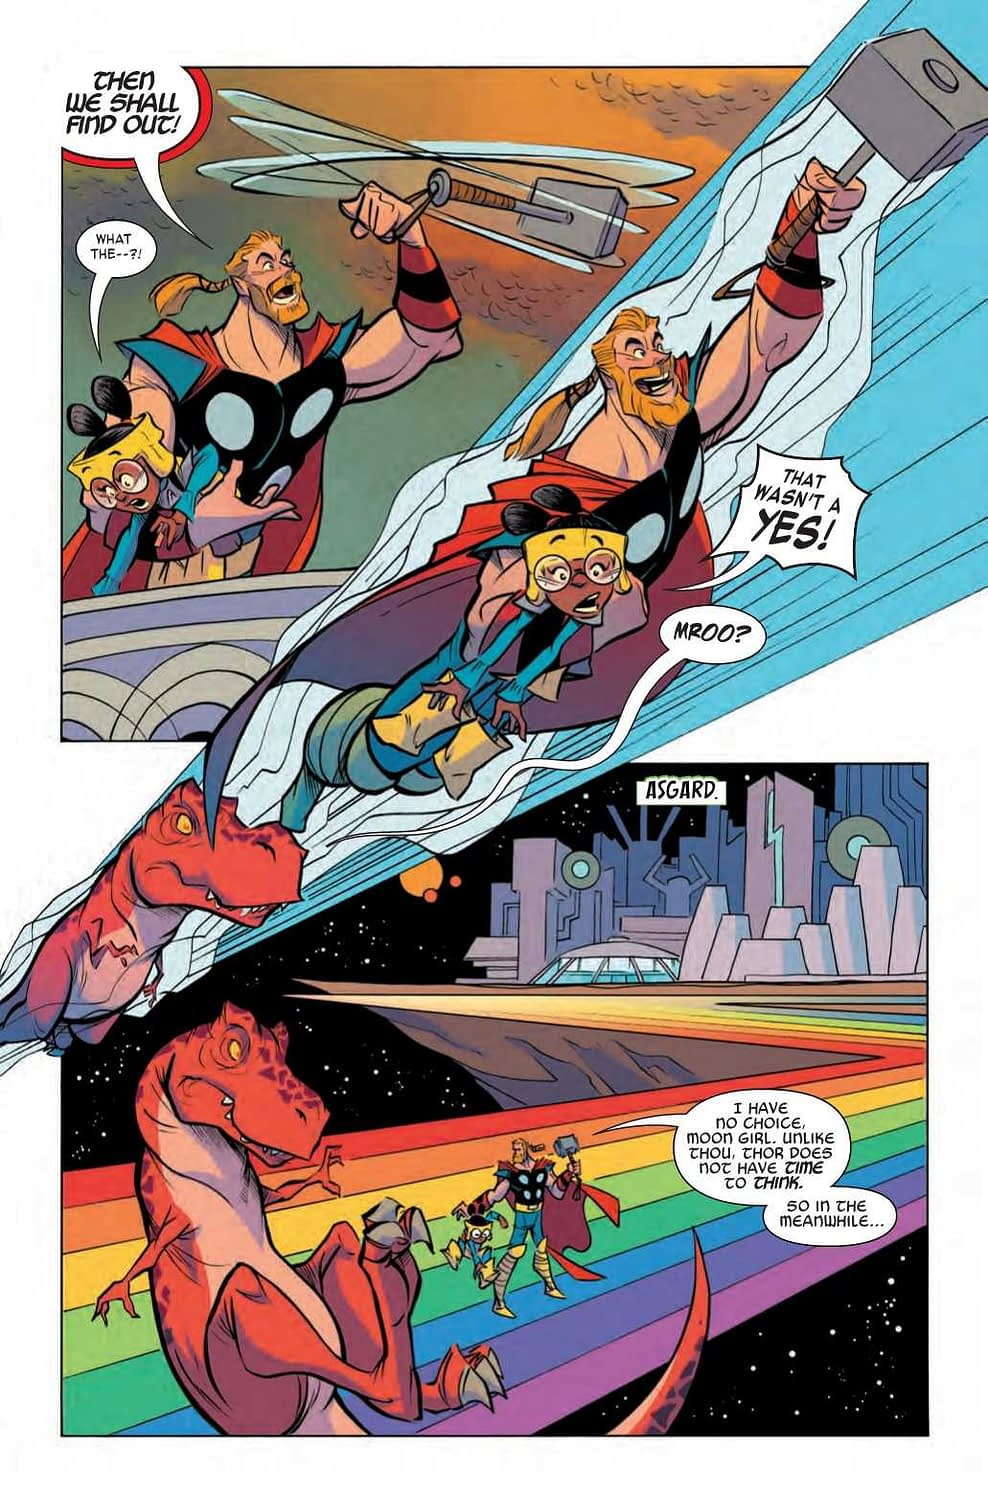 Moon Girl Puts Thor in His Place - Moon Girl and Devil Dinosaur #43 Preview